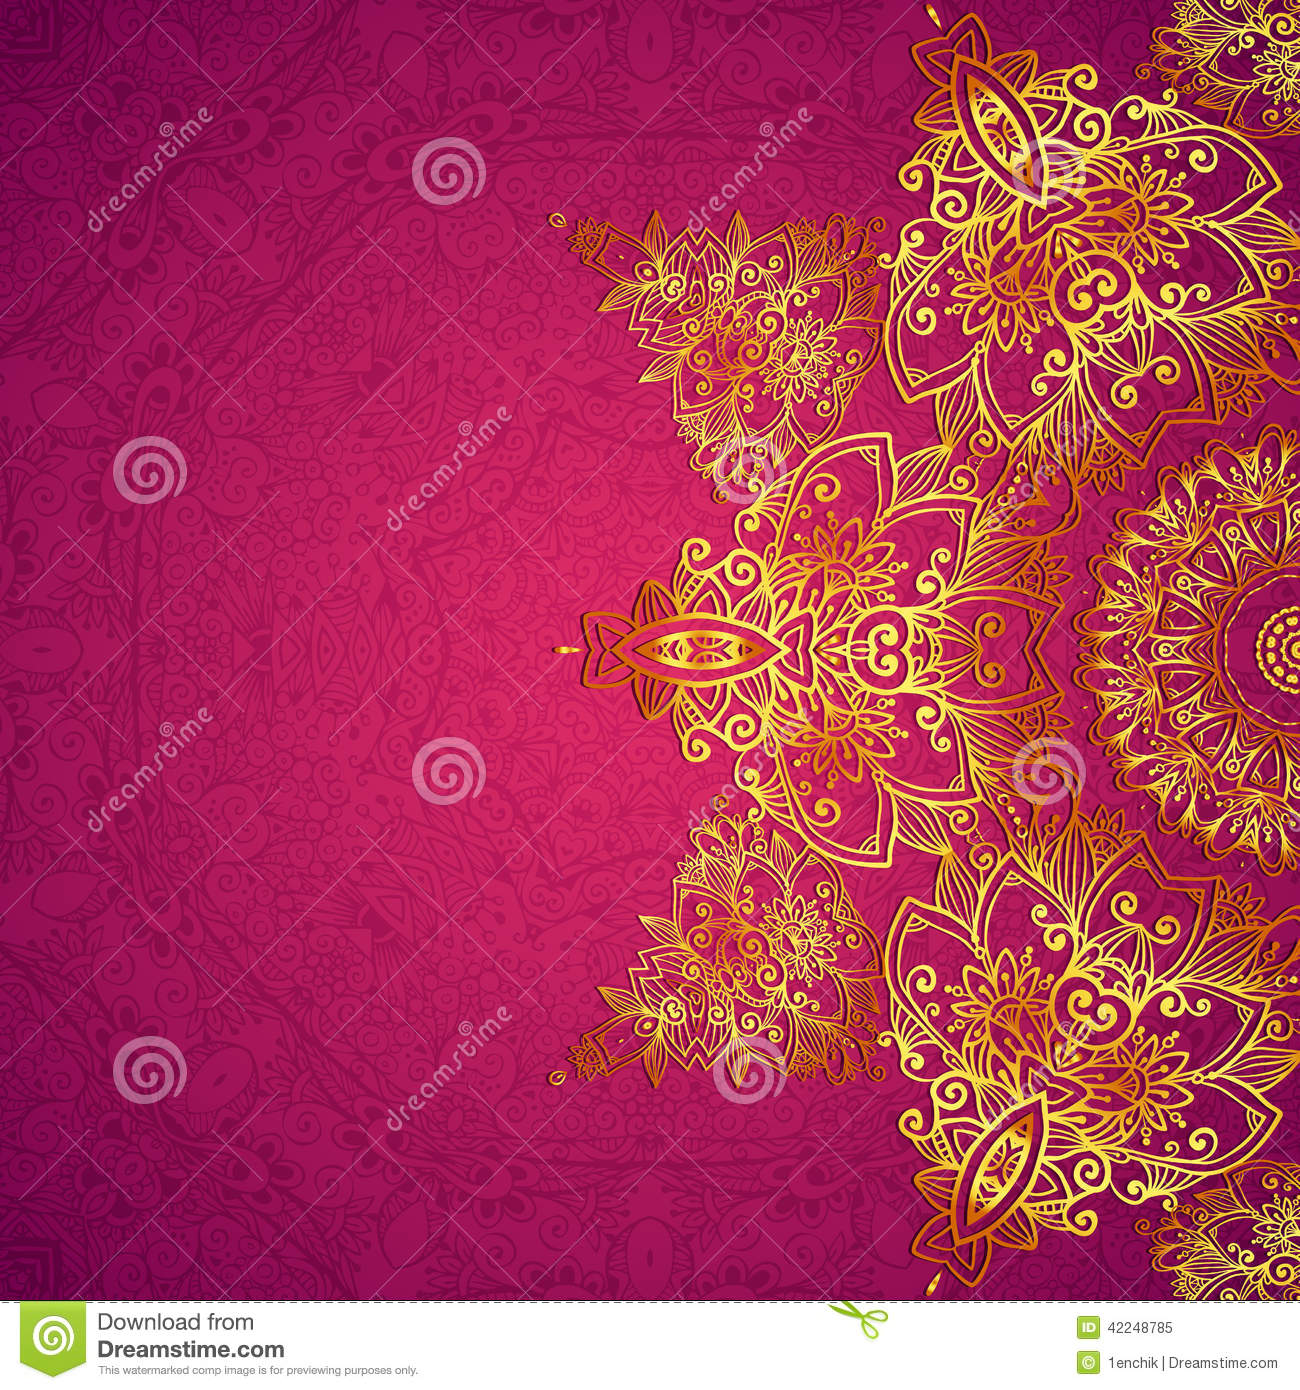 Indian Wedding Card Background Images - impremedia.net